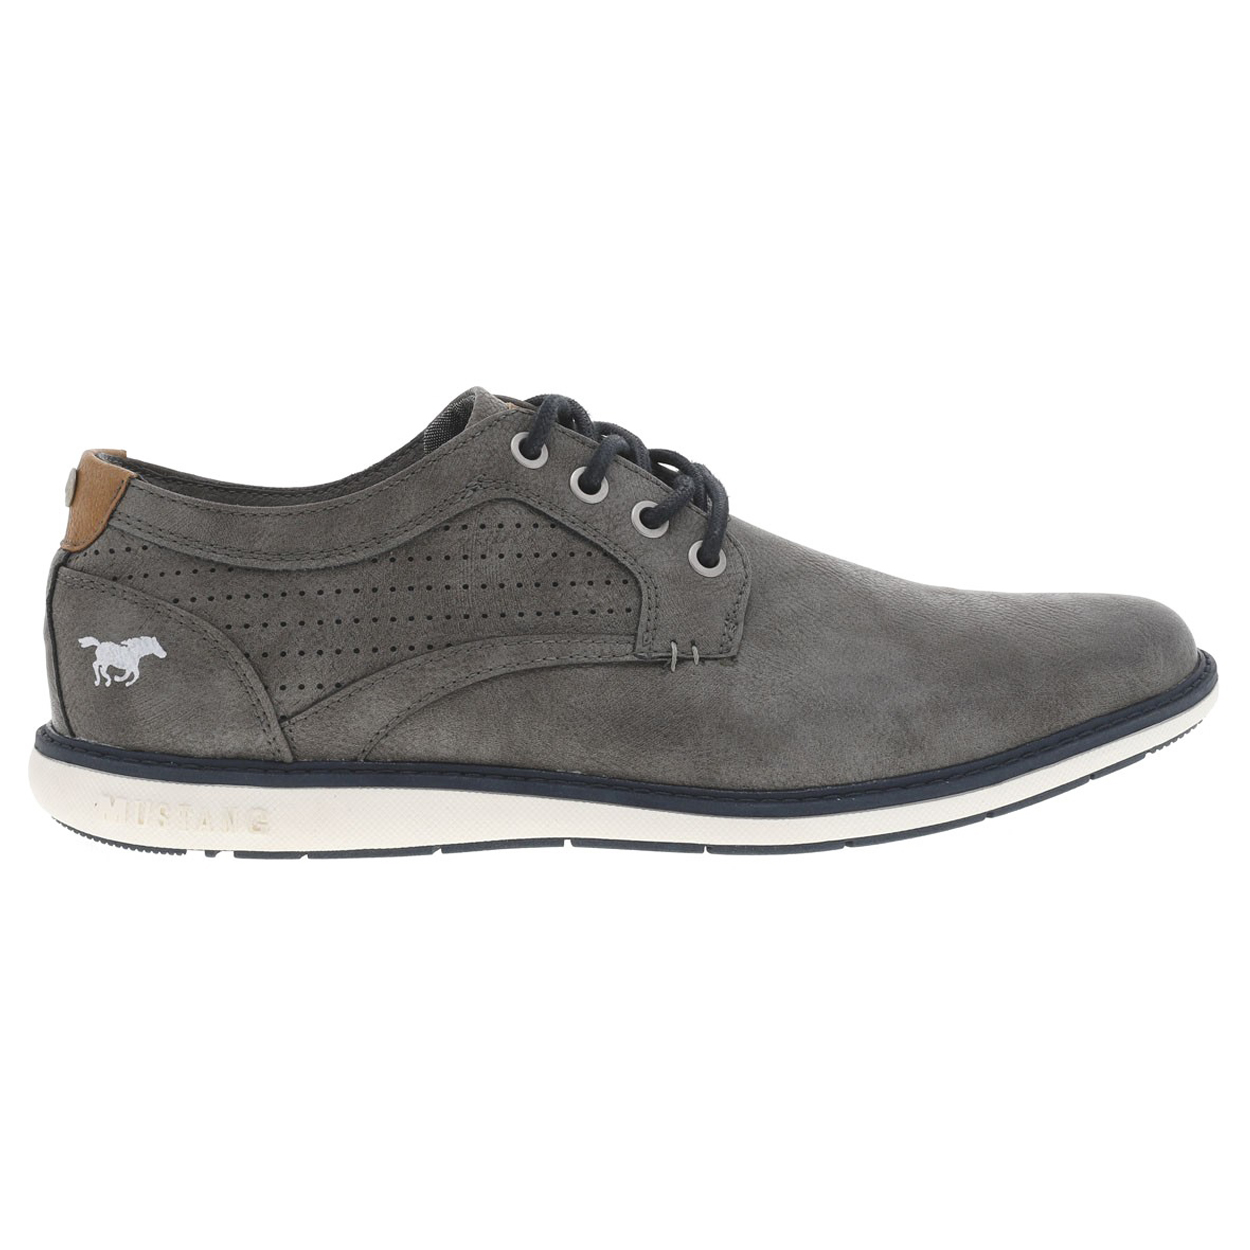 Chaussures de ville Mustang gris anthracite. Chaussures de ville Mustang gris anthracite